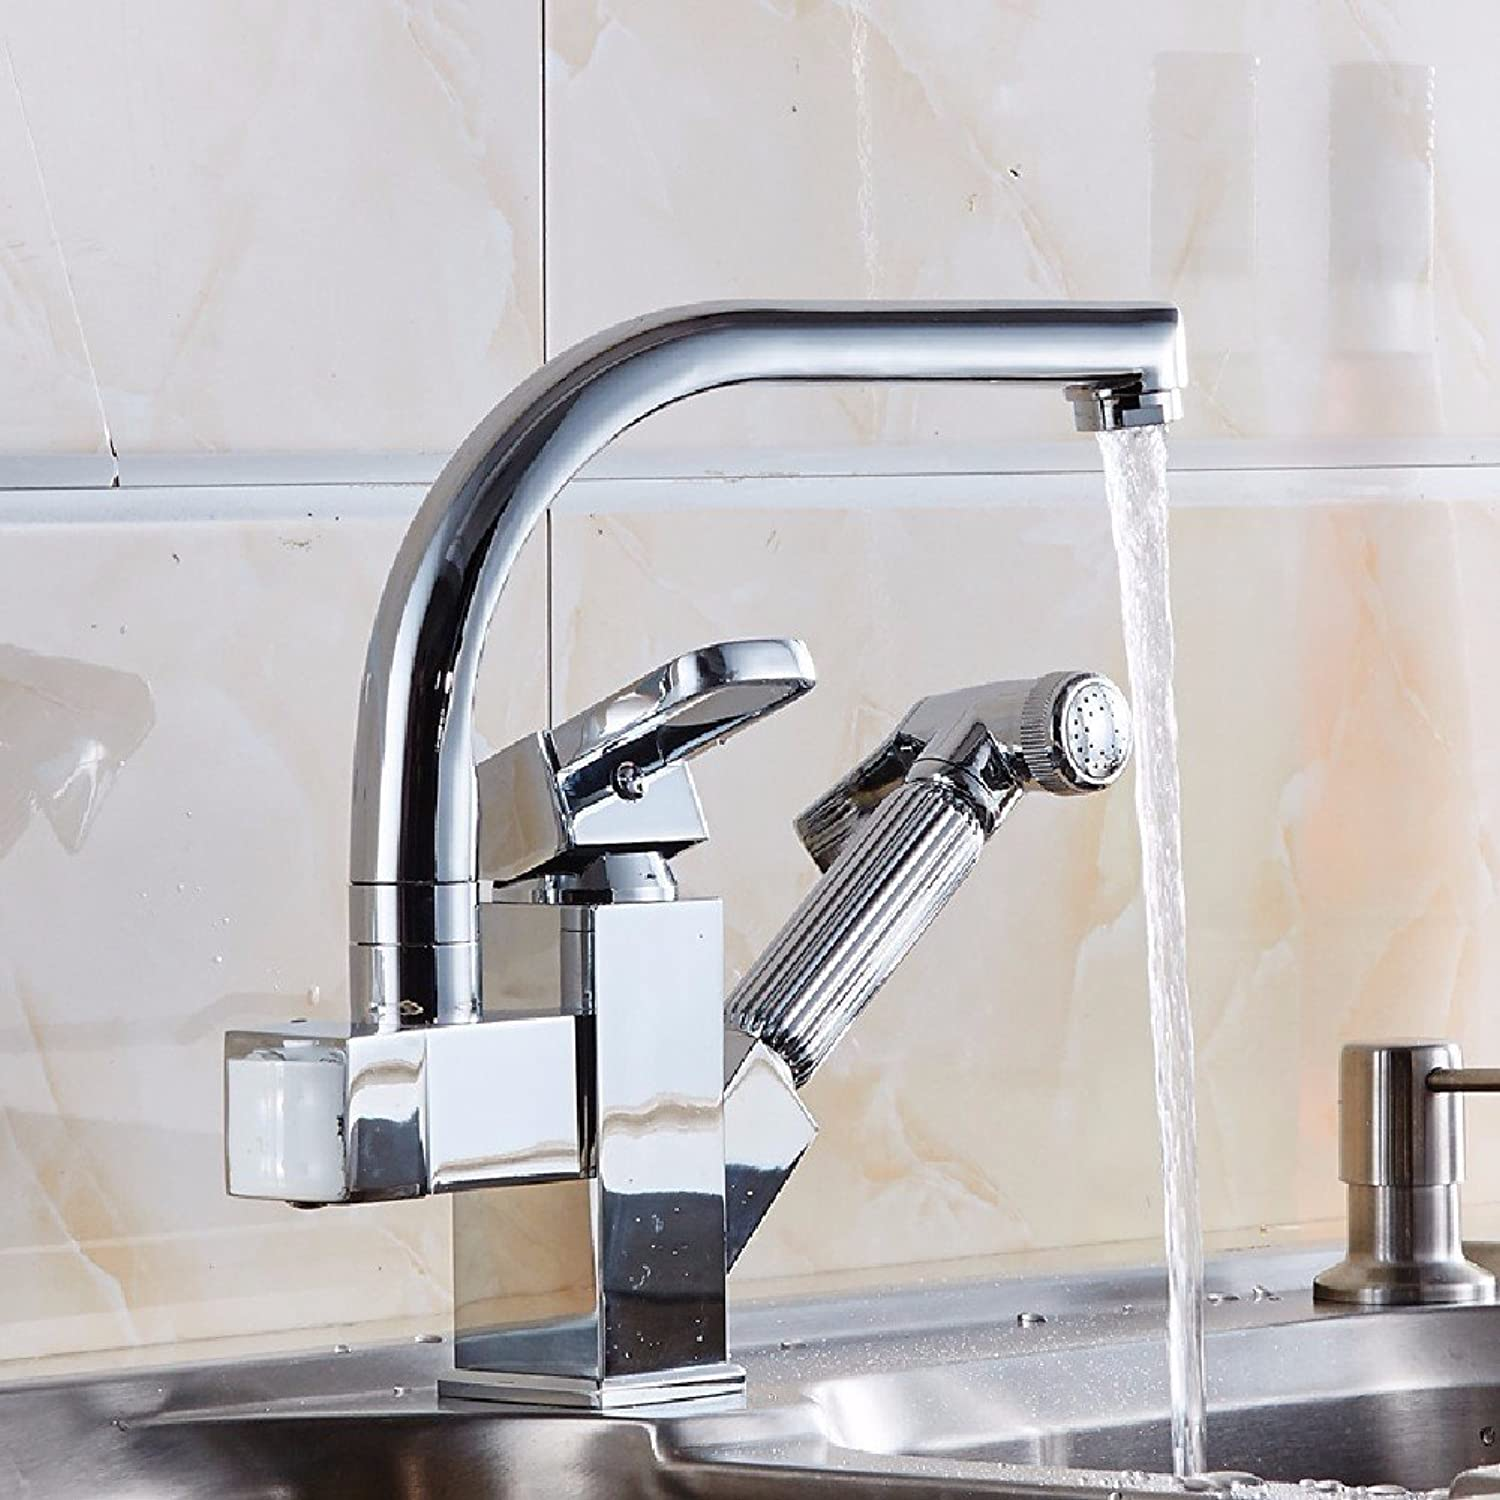 Gyps Faucet Basin Mixer Tap Waterfall Faucet Antique Bathroom Pull kitchen faucet full copper lead-free hot and cold dish washing basin to redate the dish sink basin mixer